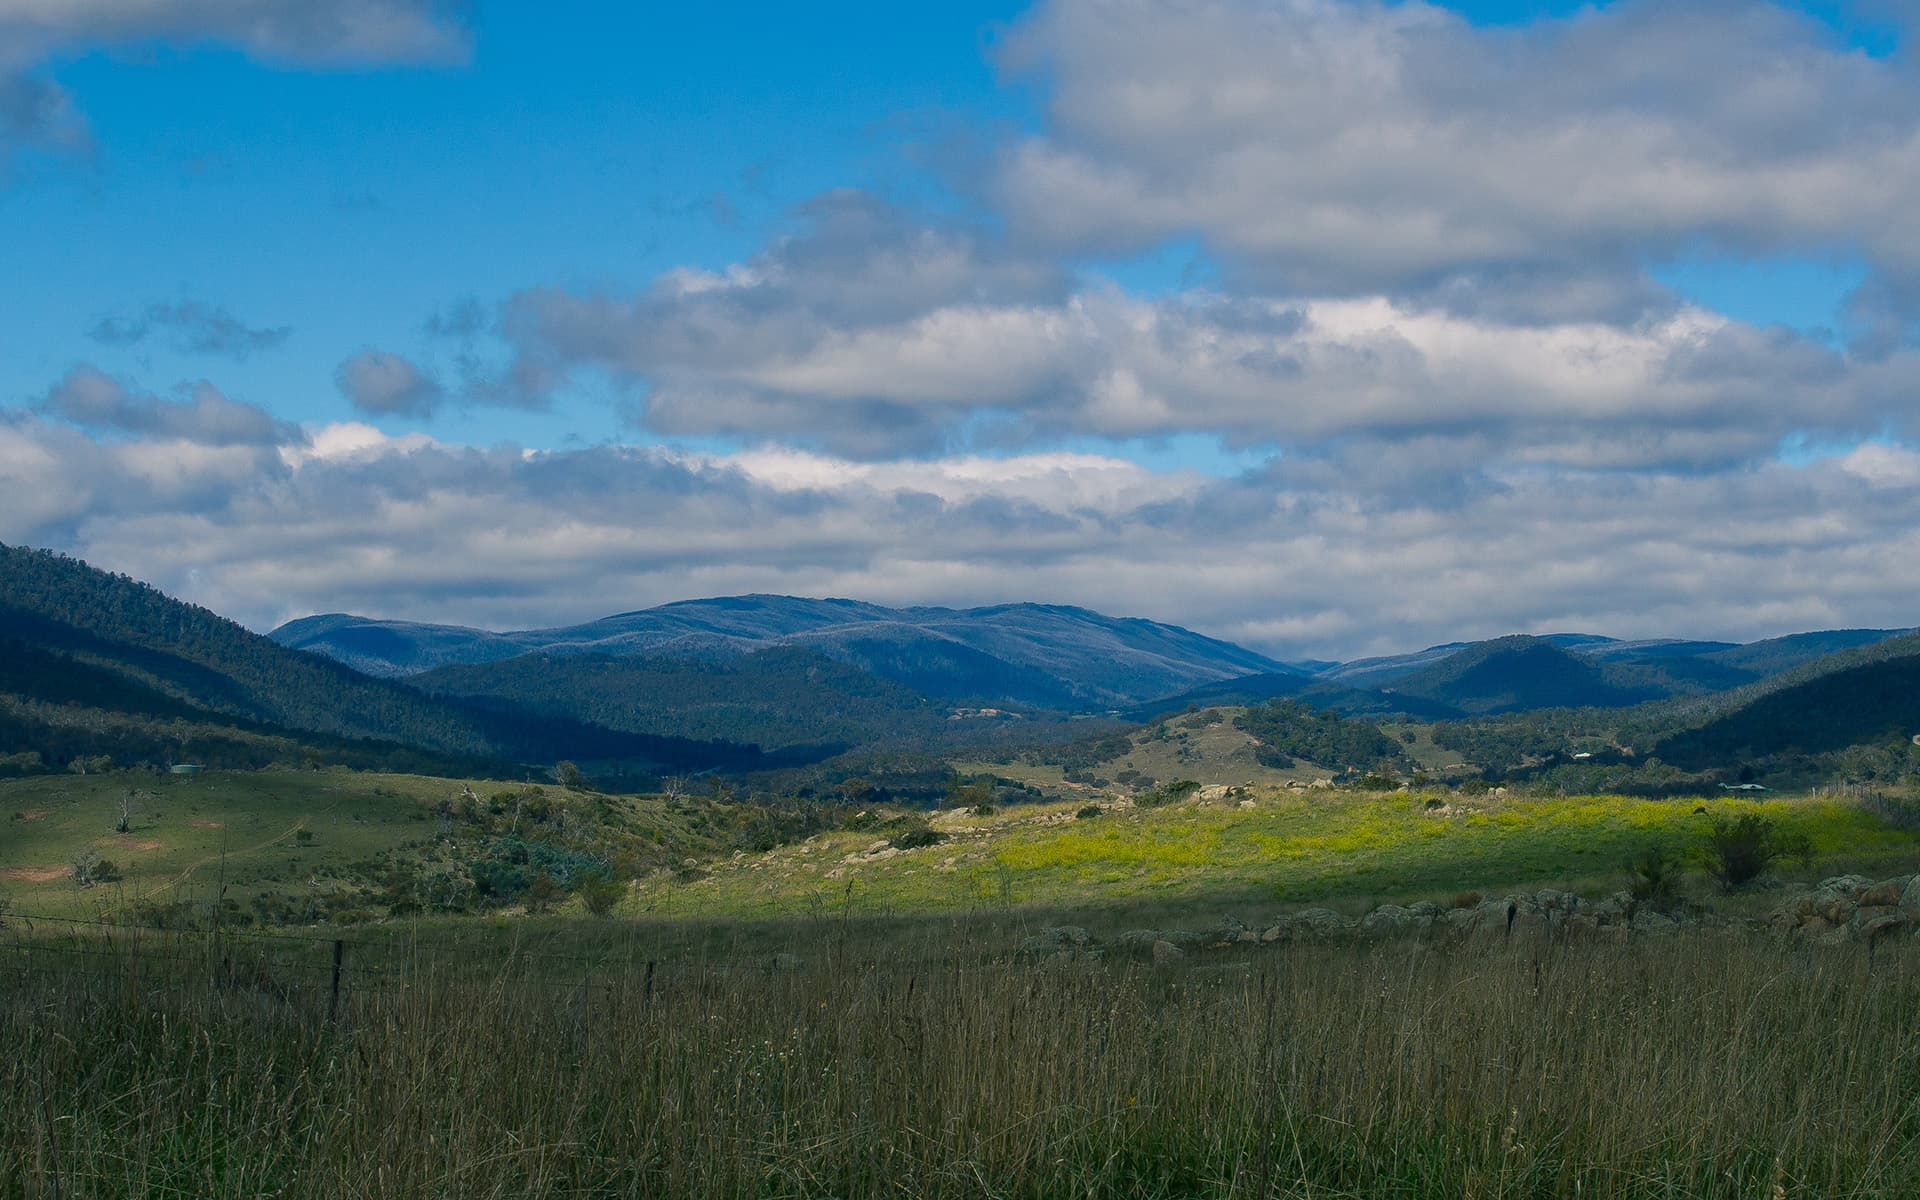 Mount Kosciuszko Australia Widescreen Wallpaper